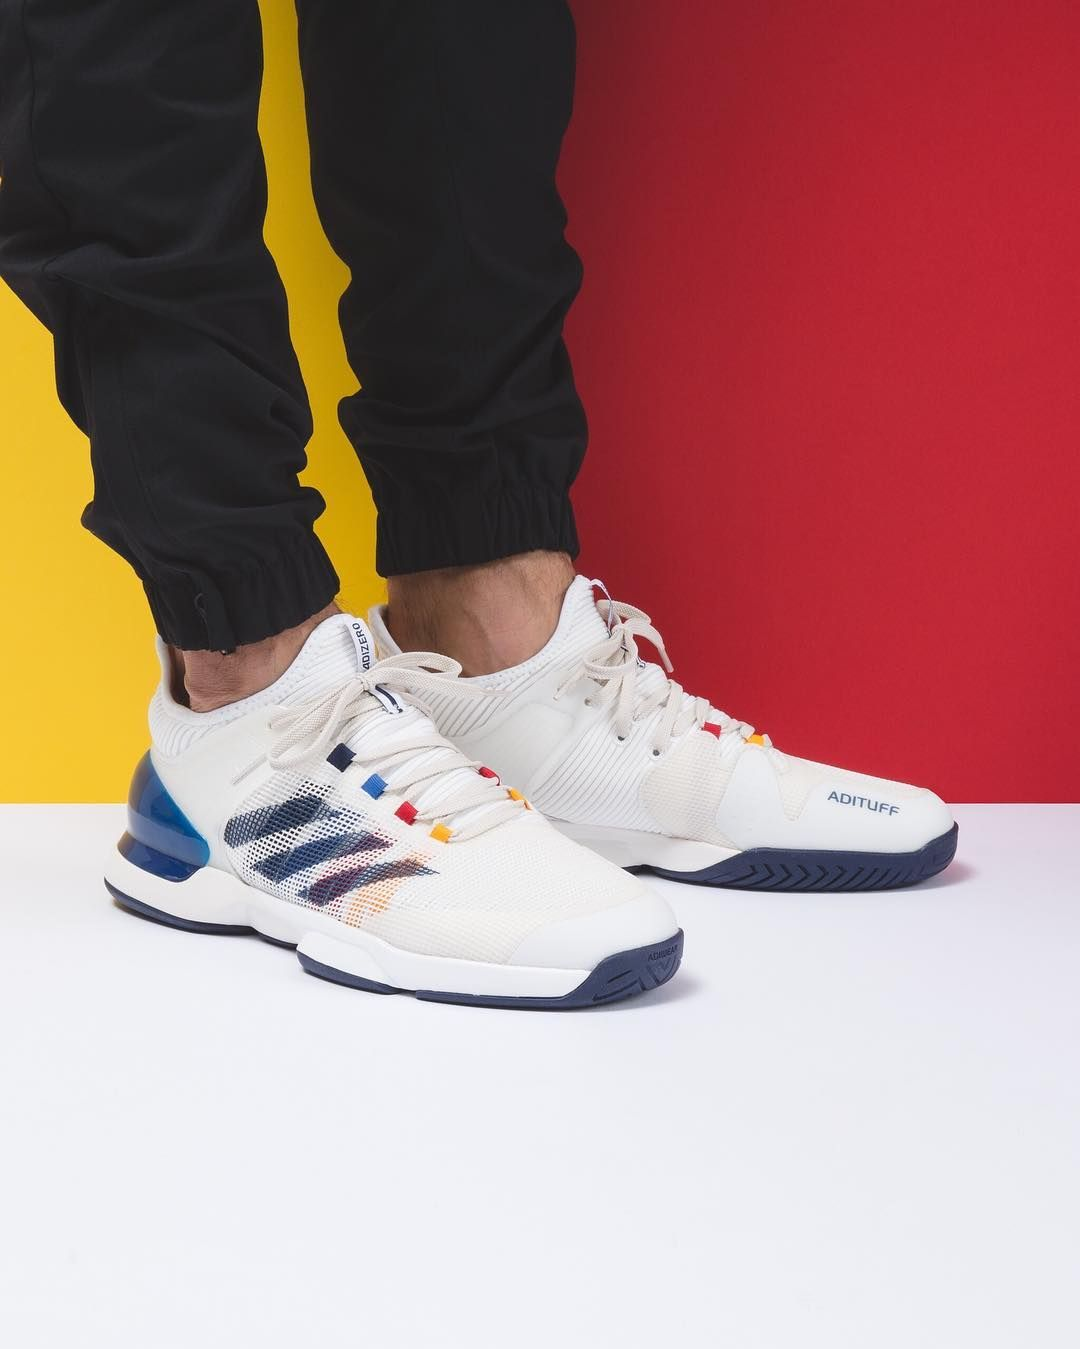 0cf91aff2df60 adidas Tennis Collection by Pharrell Williams